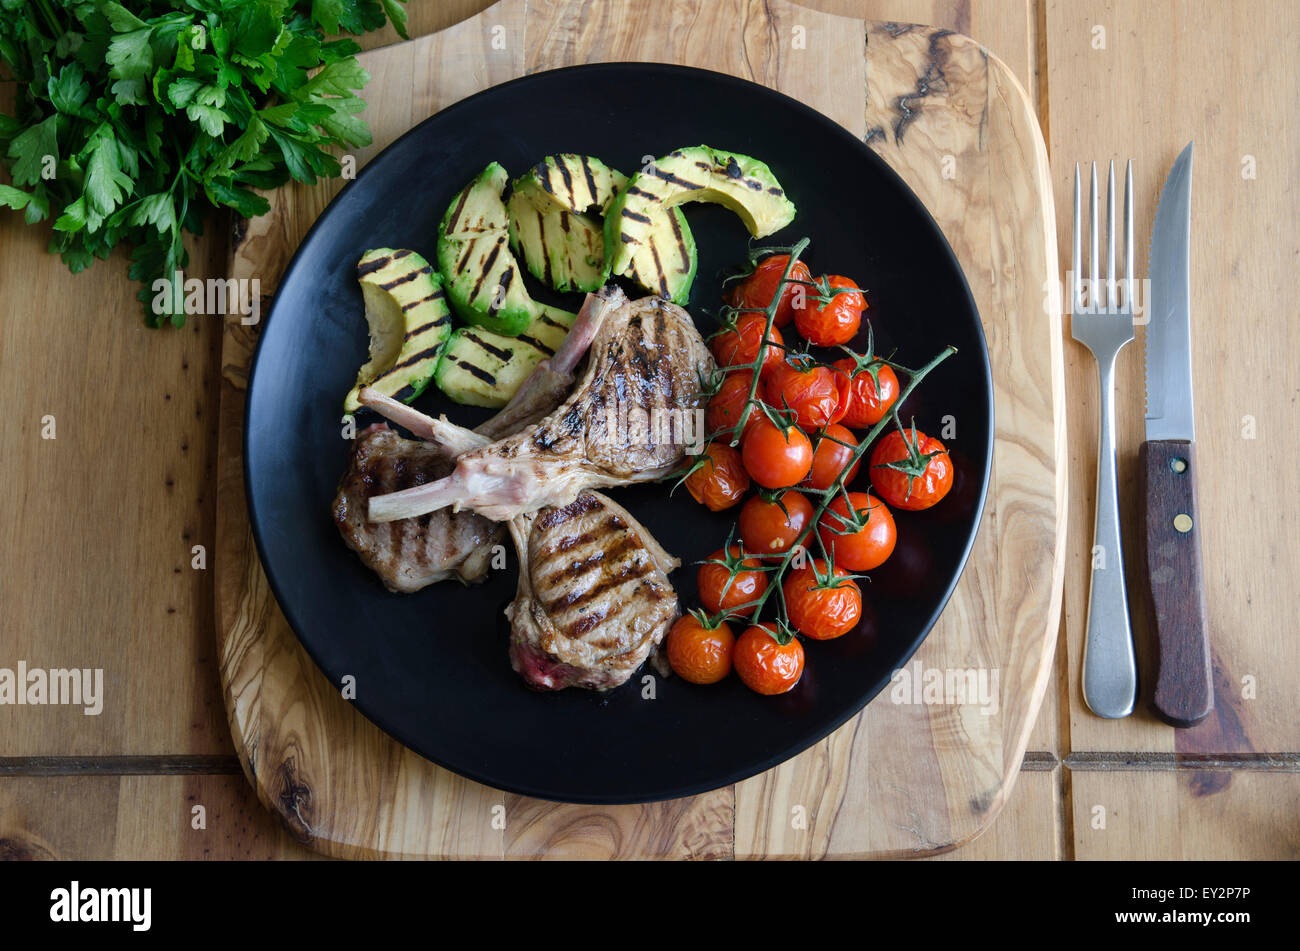 Lamb cutlets with avocado and tomatoes - Stock Image